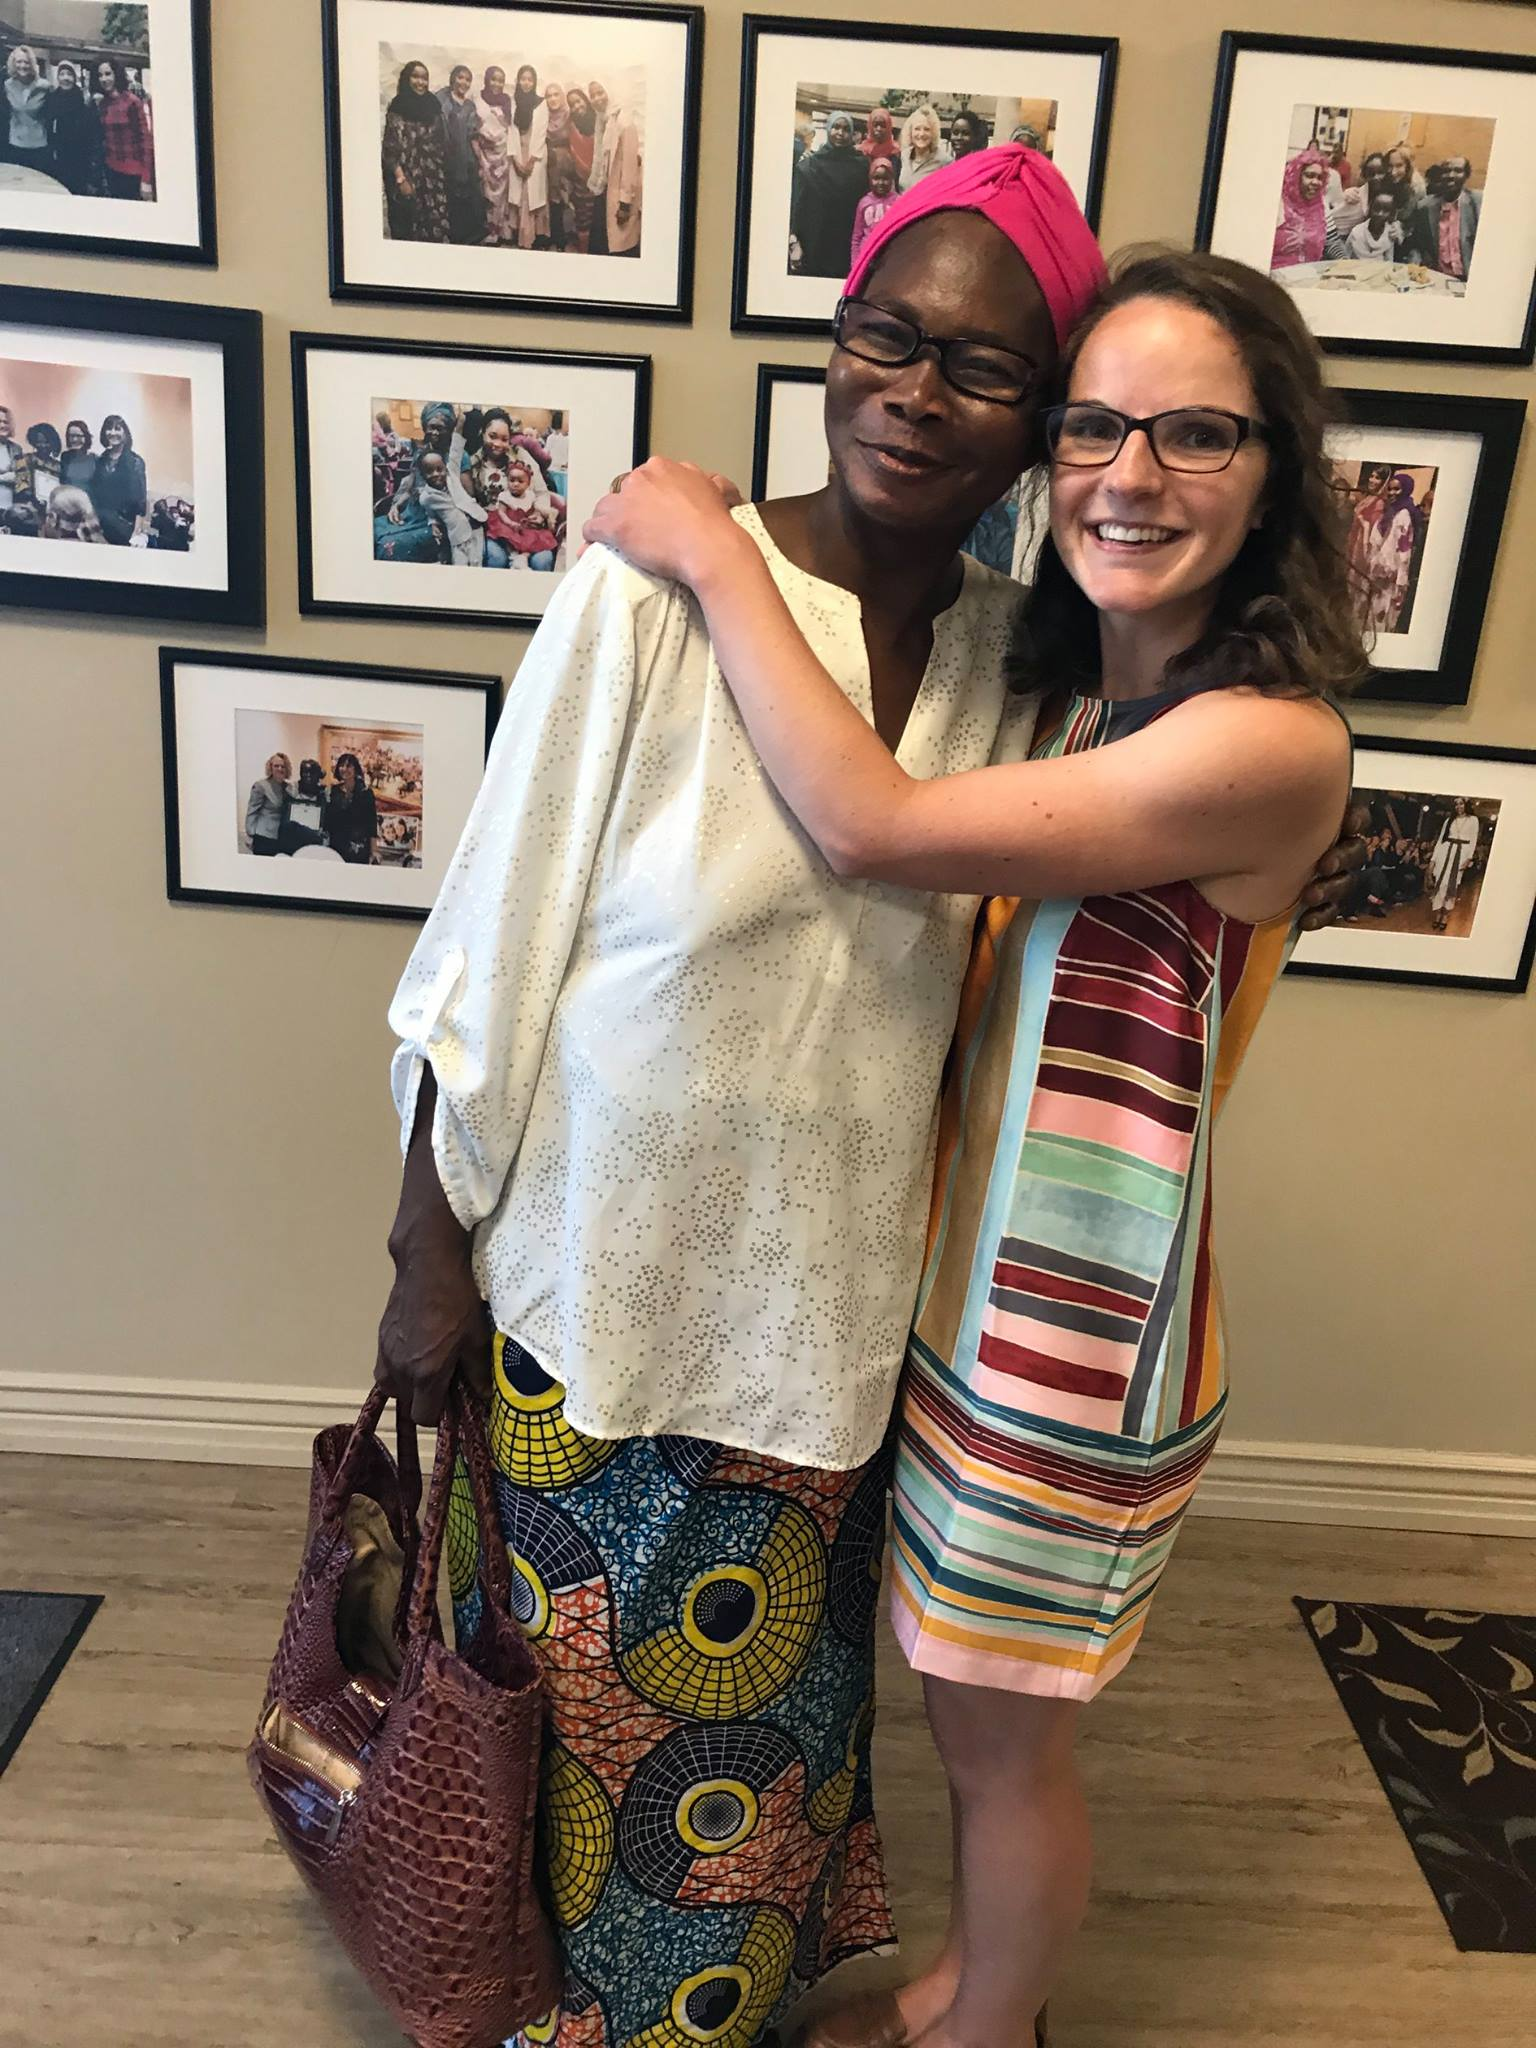 Abby shares a special moment with a friend she's made working here at Women of the World.